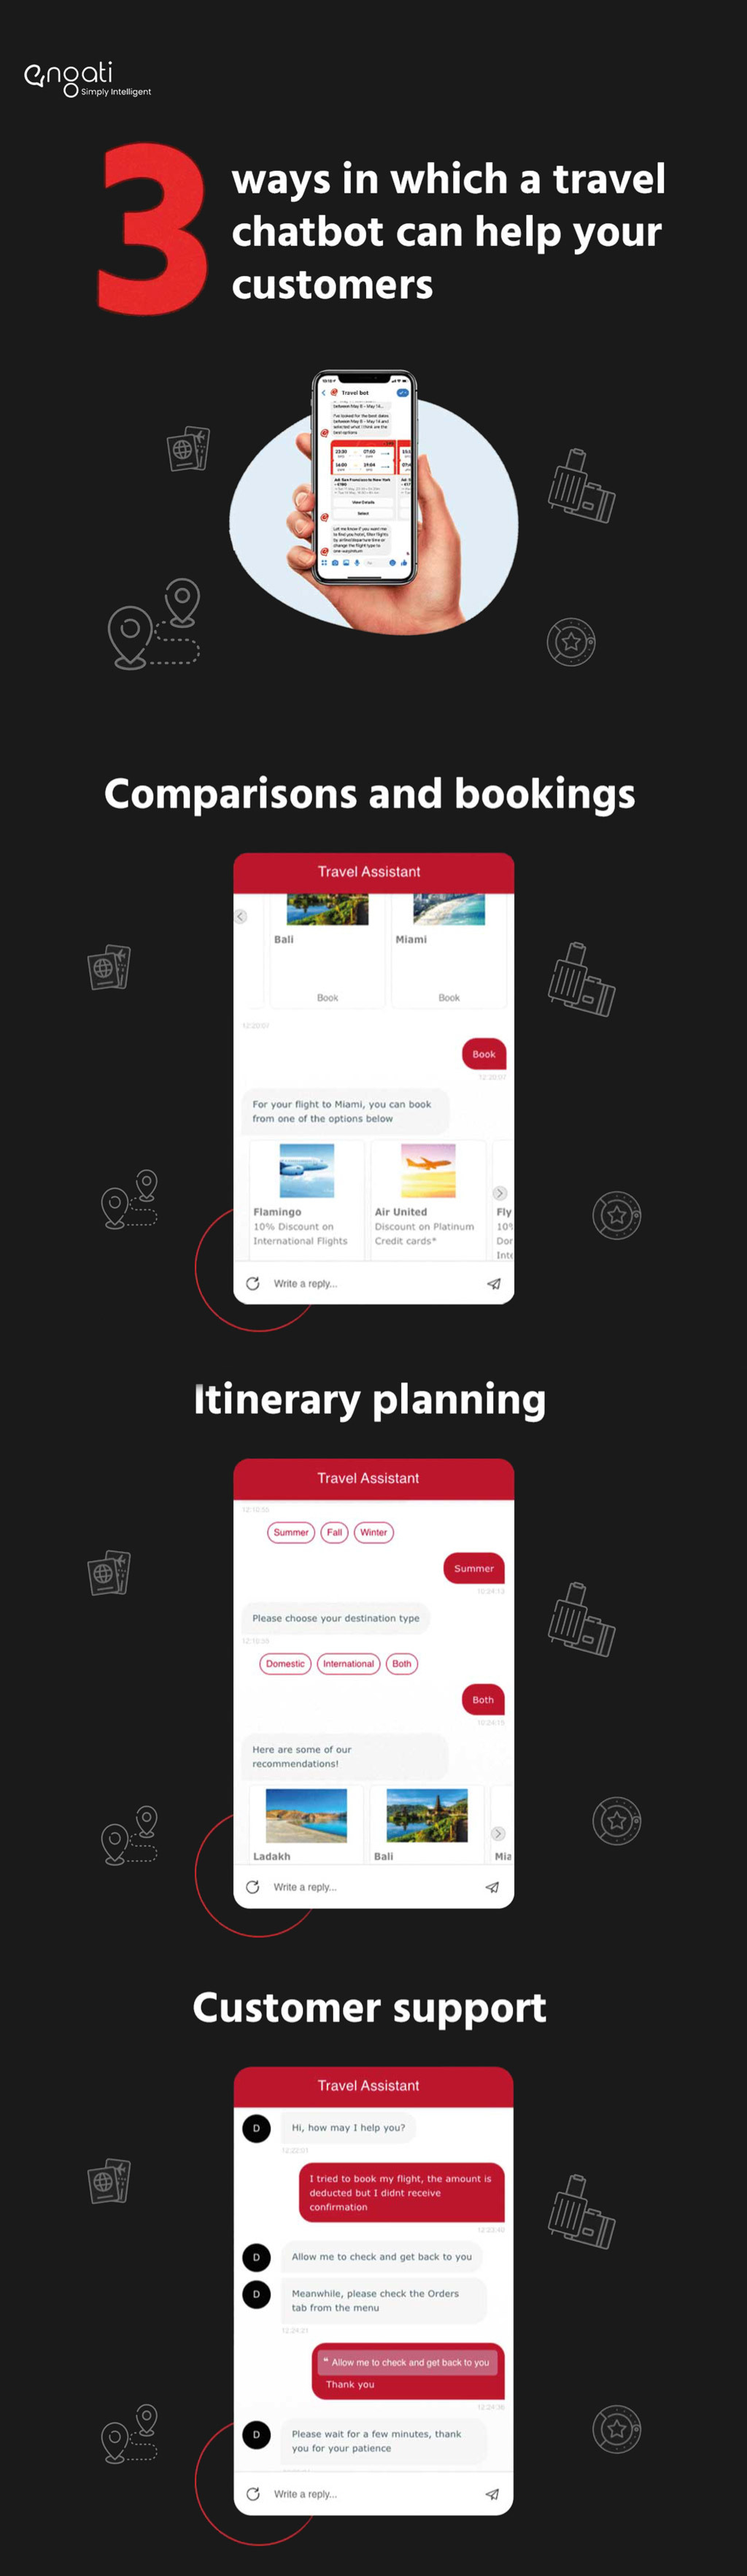 Infographic on ways chatbots can support your customers by planning their journeys, comparing prices, and more